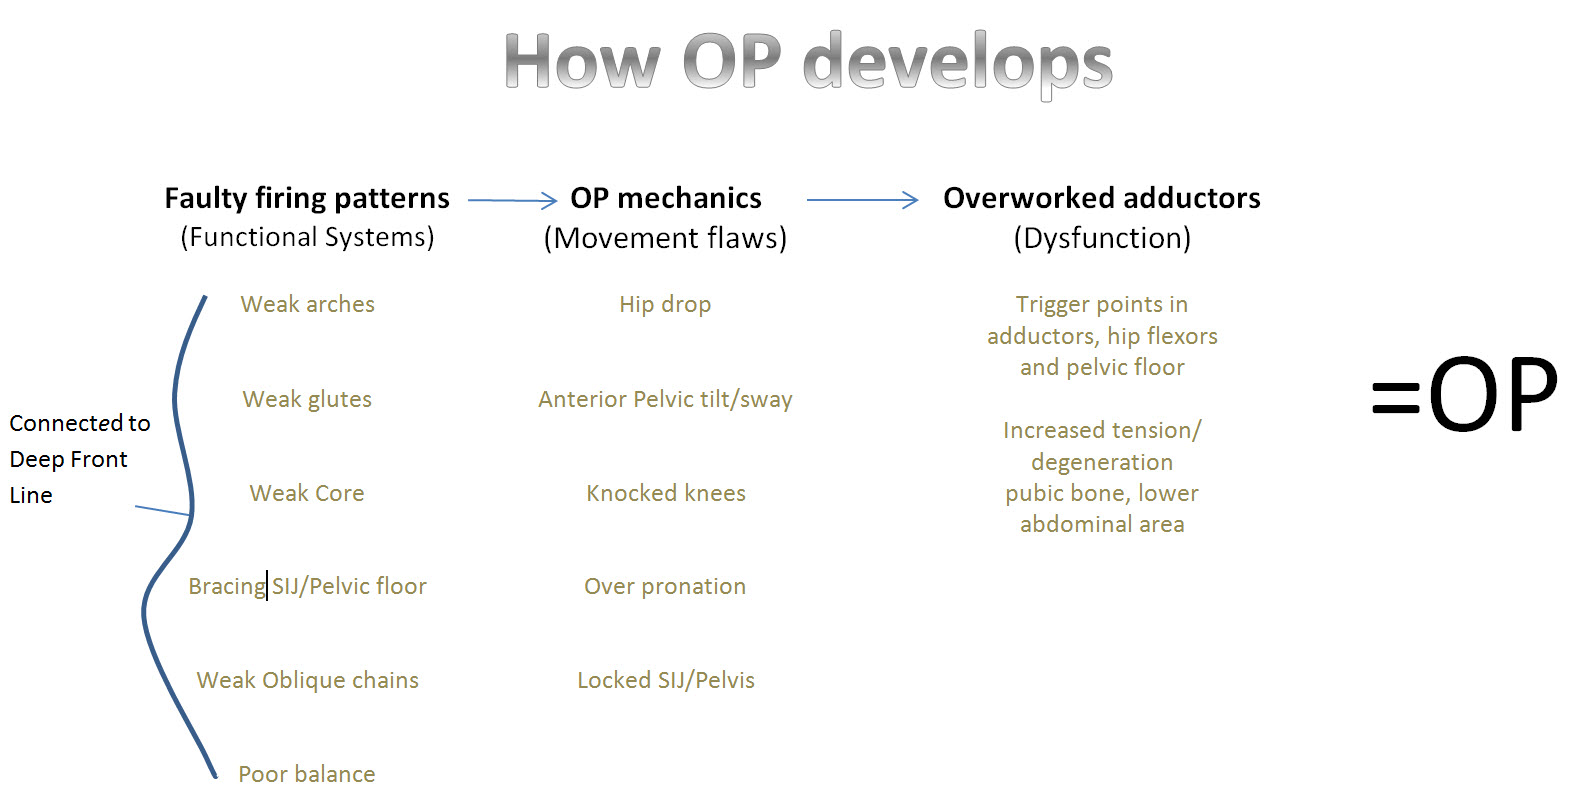 op-development-diagram